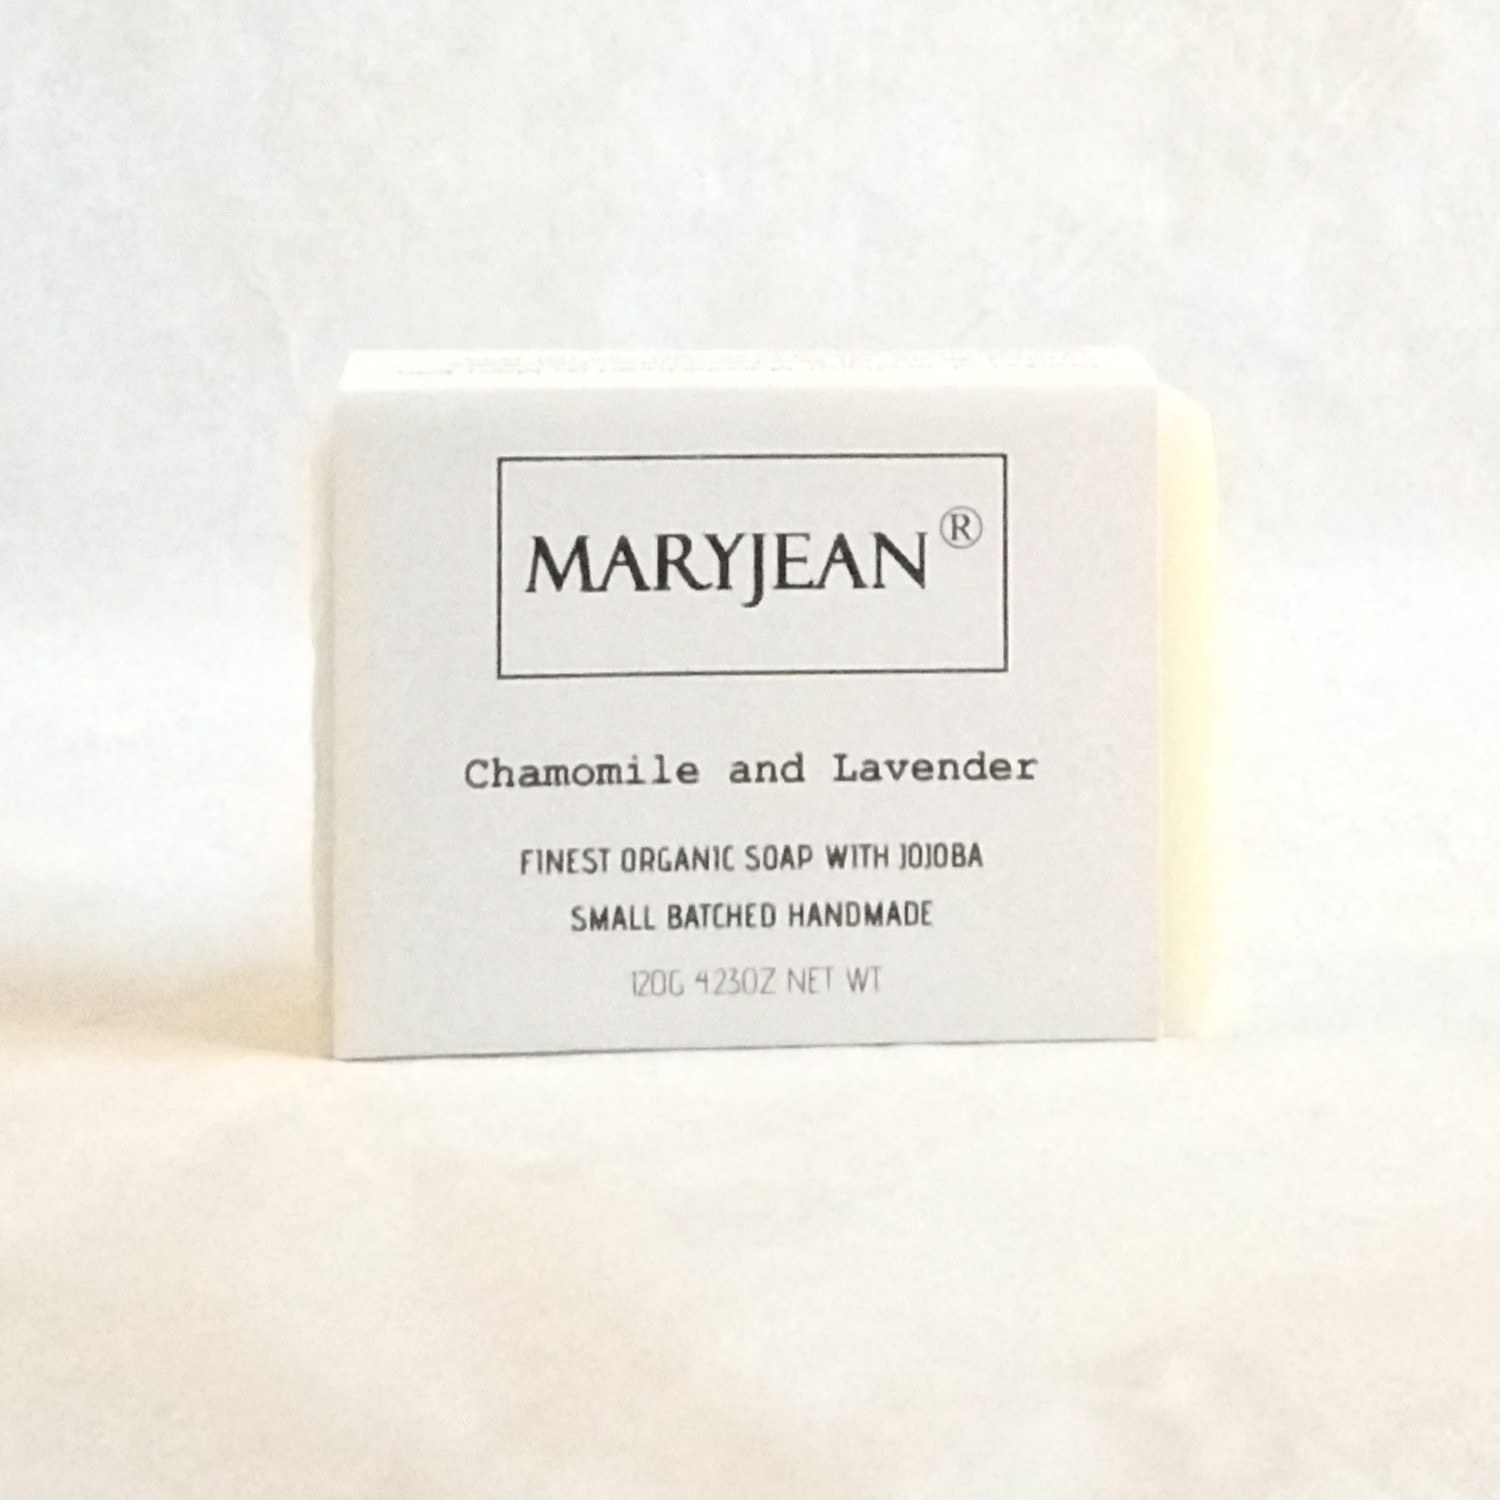 Twin Pack 2 Organic Scottish Chamomile Lavender Facial Cleansing Plastic And Sulphate Free Soaps Handmade With Jojoba An excellent choice for treating sun burnt skin this summer this bar of twin pack value for money soap is sensitive enough for every day healthier skin